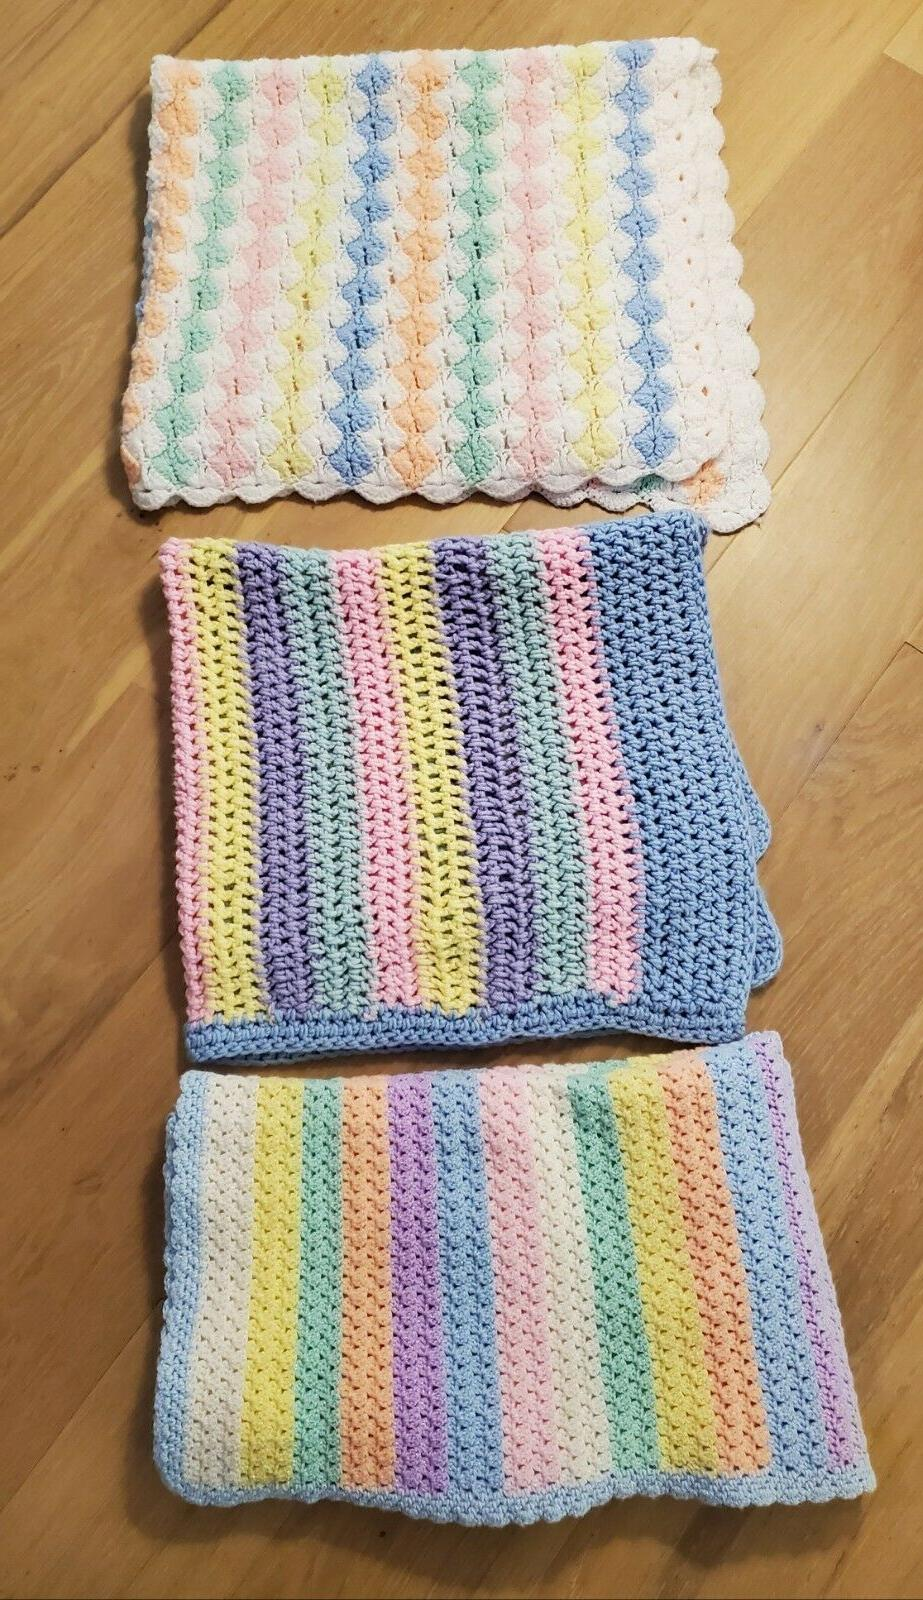 choice new crocheted baby blankets for girl